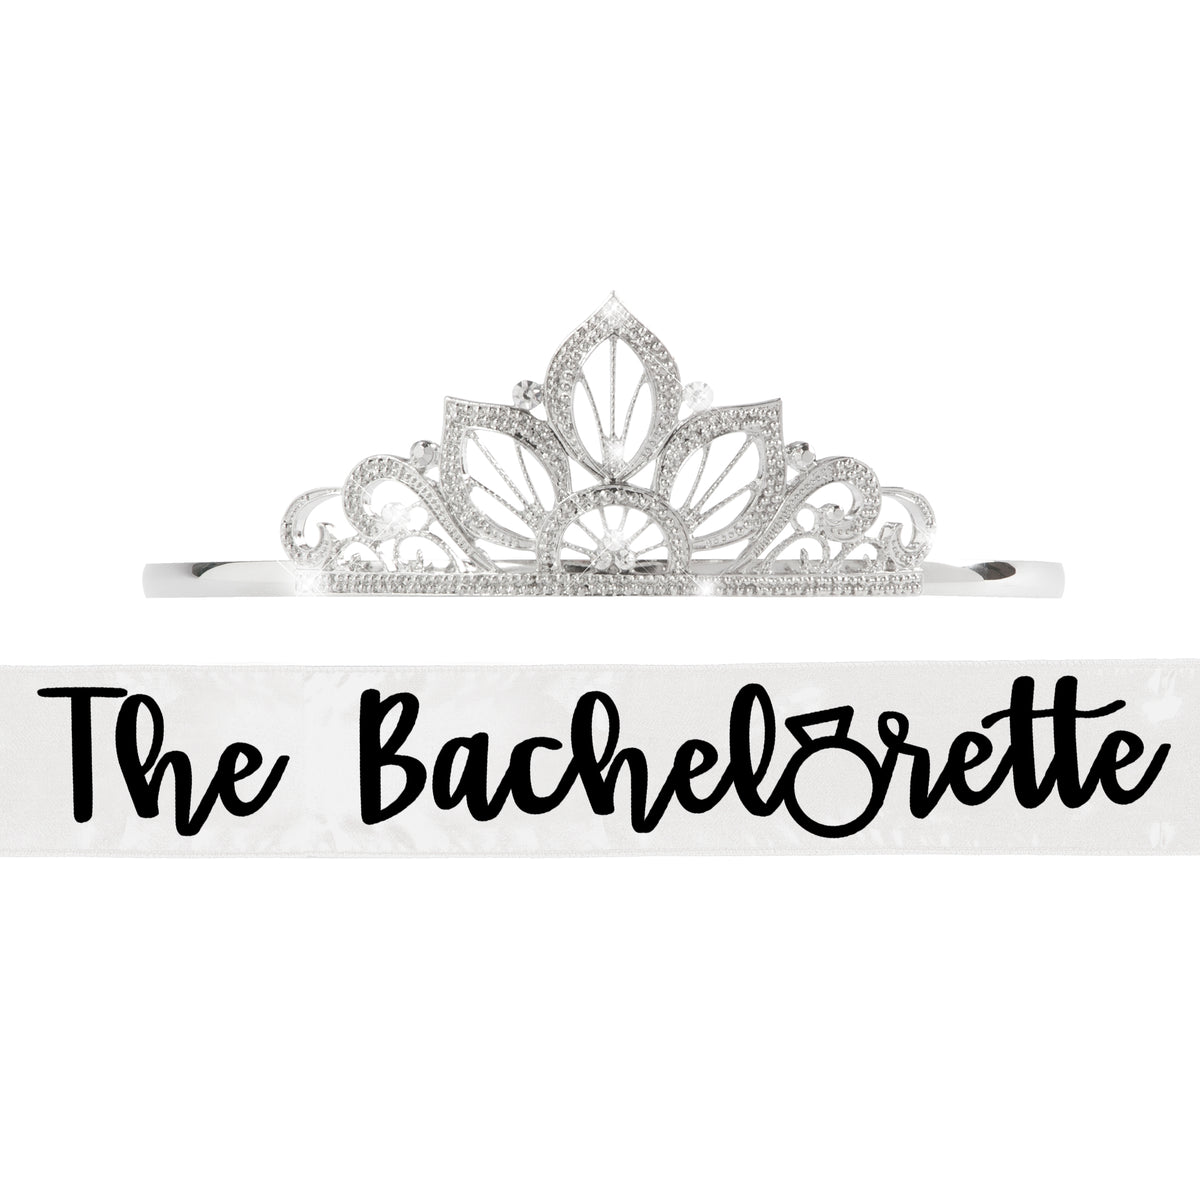 The Bachelorette Sash with Tiara